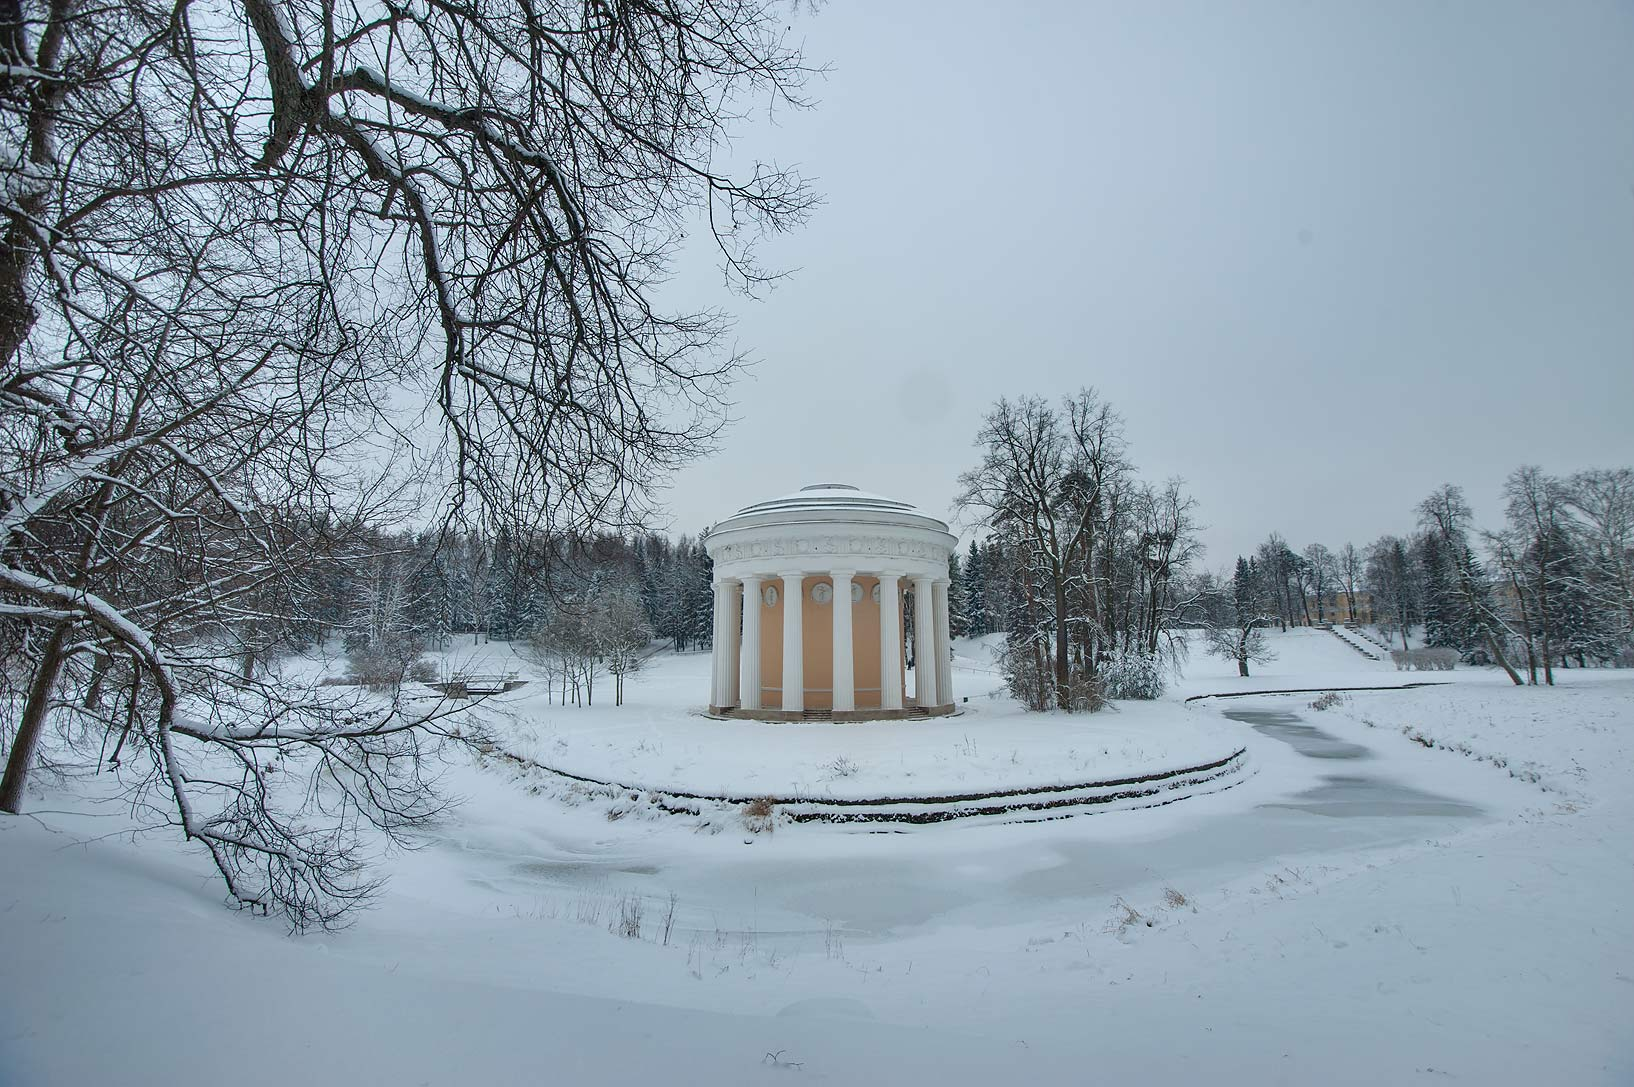 Frienship Temple in Pavlovsk Park. Pavlovsk, a suburb of St.Petersburg, Russia